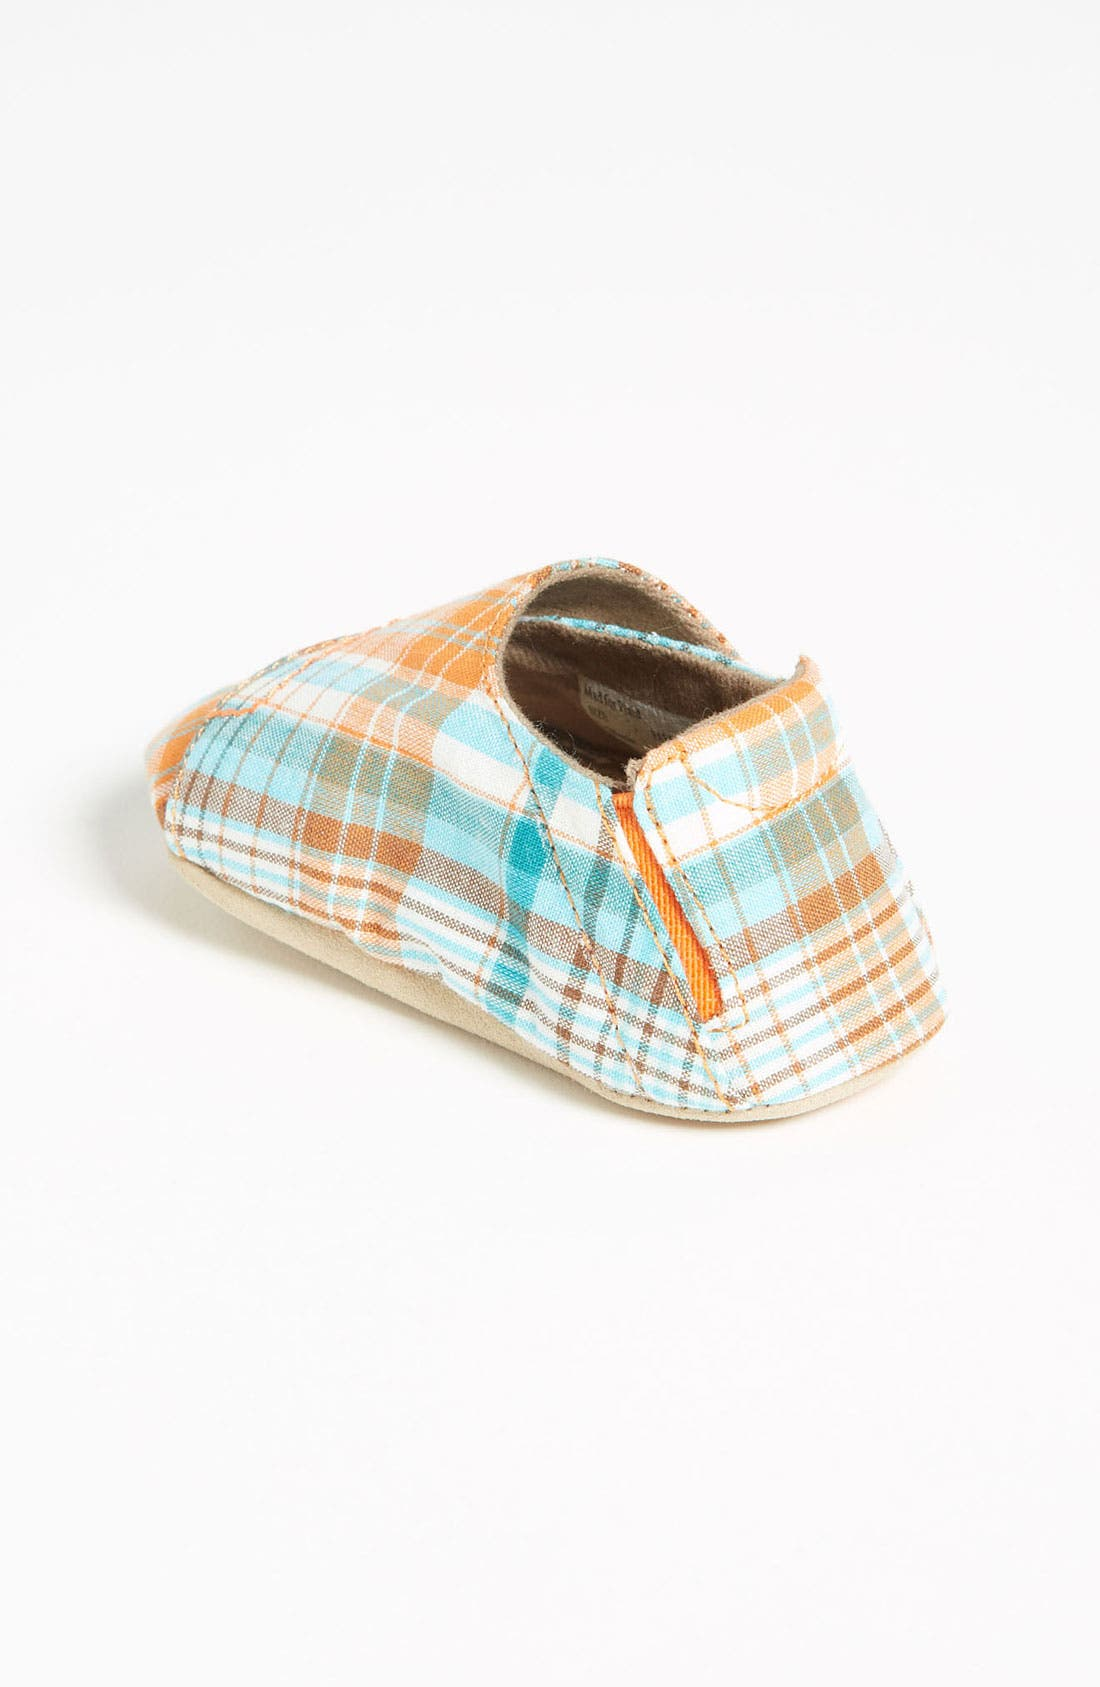 Alternate Image 2  - Stride Rite 'Mad For Plaid' Crib Shoe (Baby)